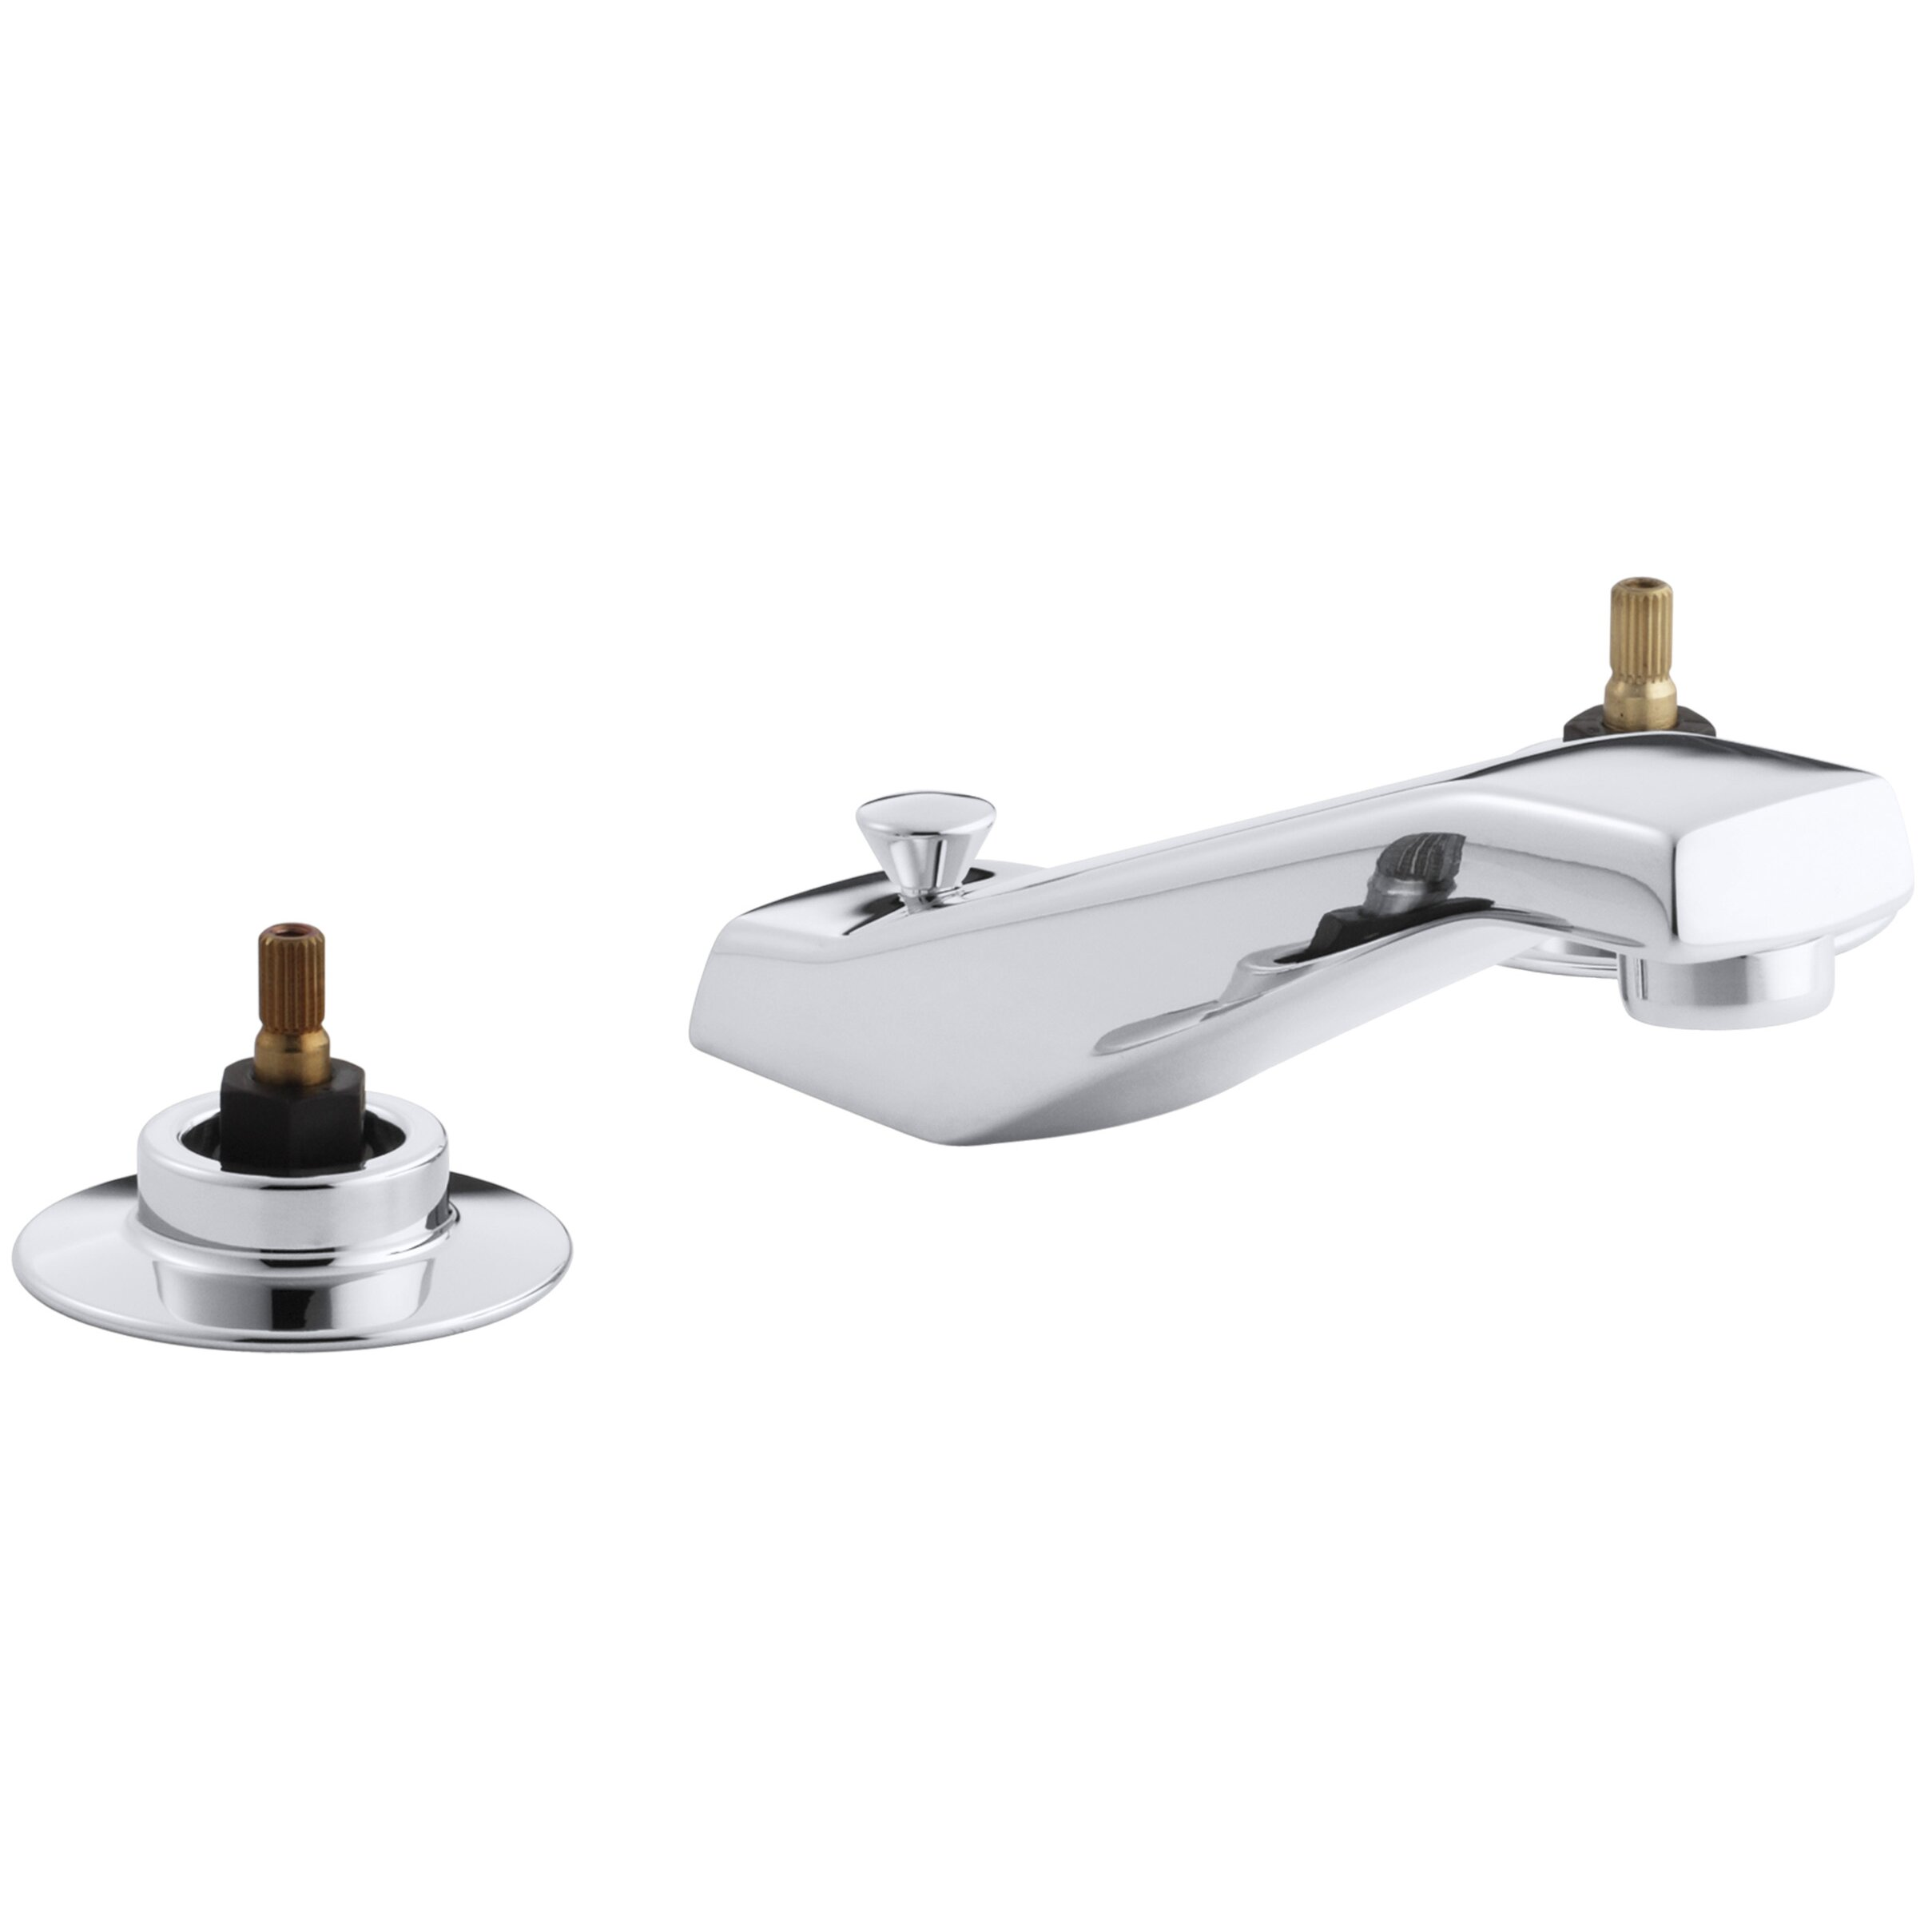 Kohler Triton Widespread Commercial Bathroom Sink Faucet with Standard ...